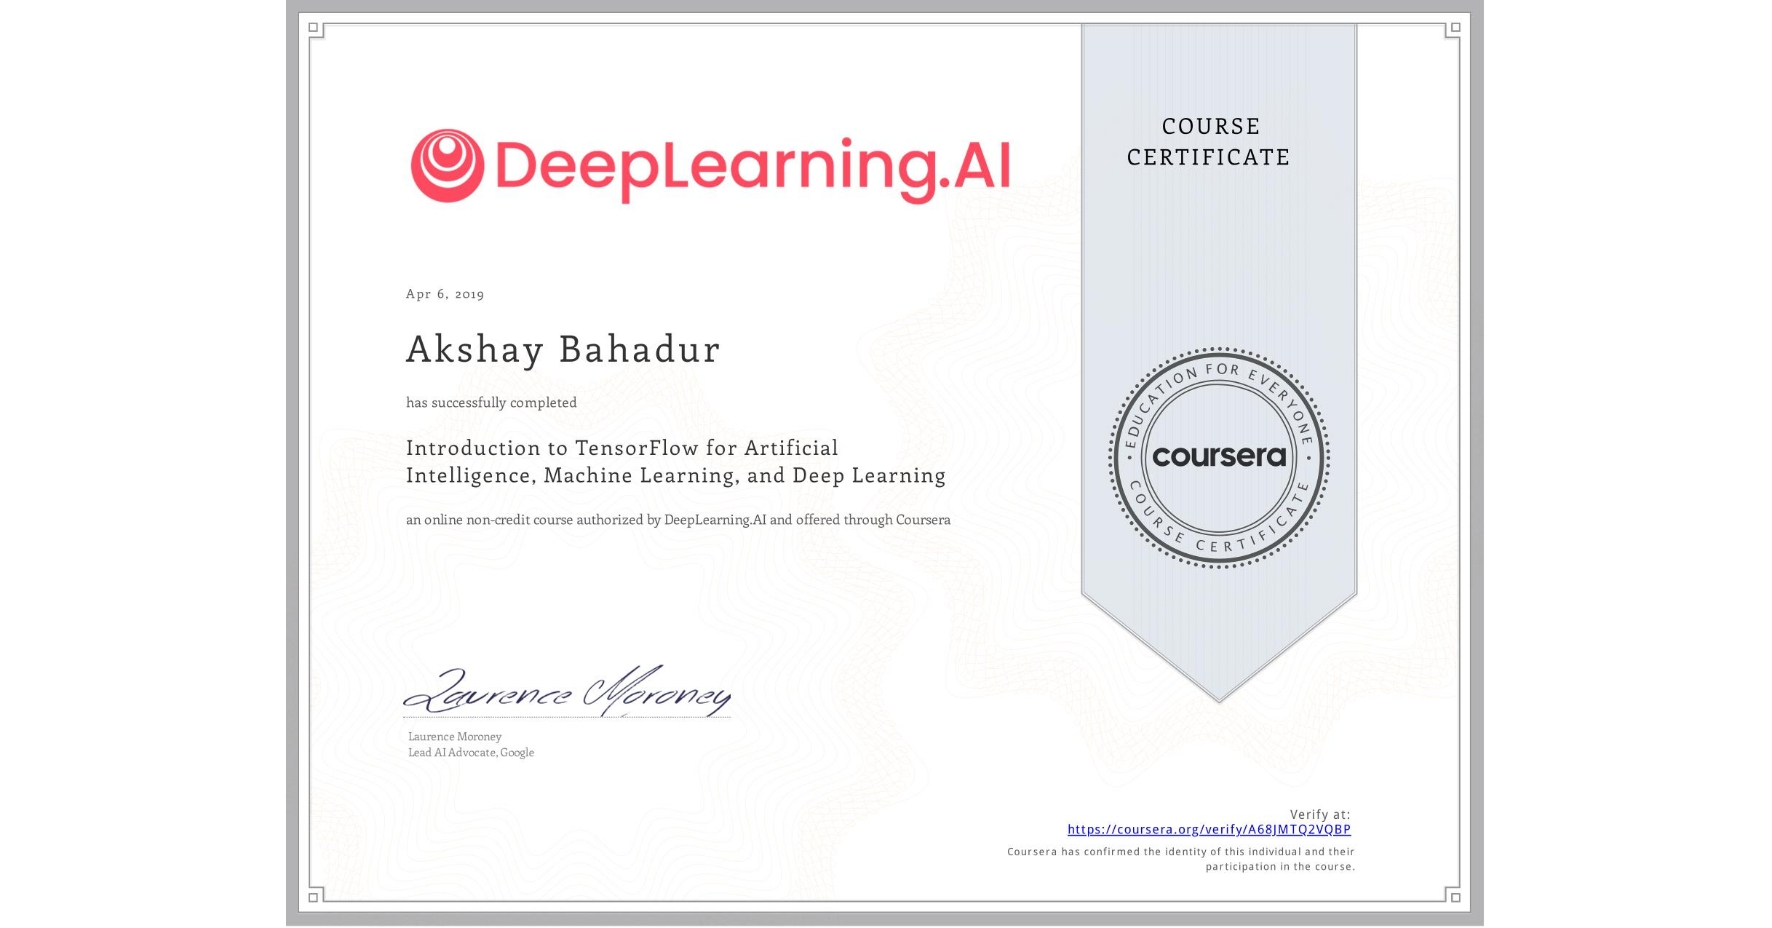 View certificate for Akshay Bahadur, Introduction to TensorFlow for Artificial Intelligence, Machine Learning, and Deep Learning, an online non-credit course authorized by DeepLearning.AI and offered through Coursera